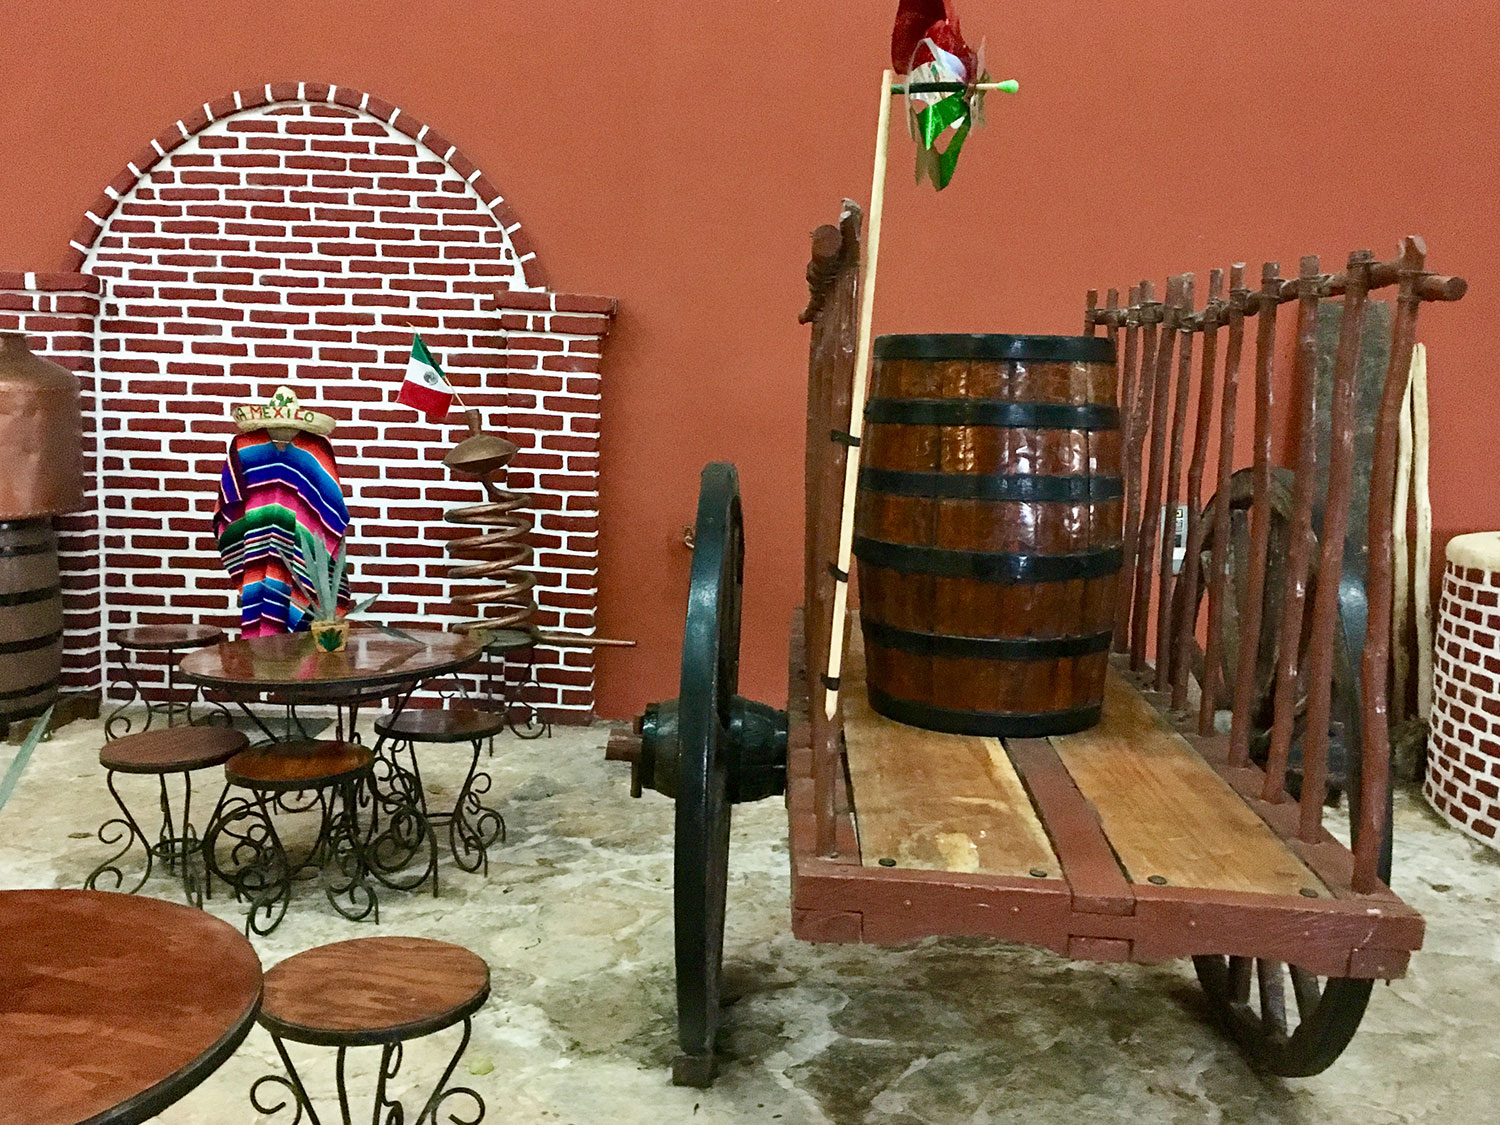 Hammocks_and_Ruins_What_to_Do_Mexico_Mayan_pyramid_tequila_Valladolid_tequileria_Mayapan_distillery_15.jpg